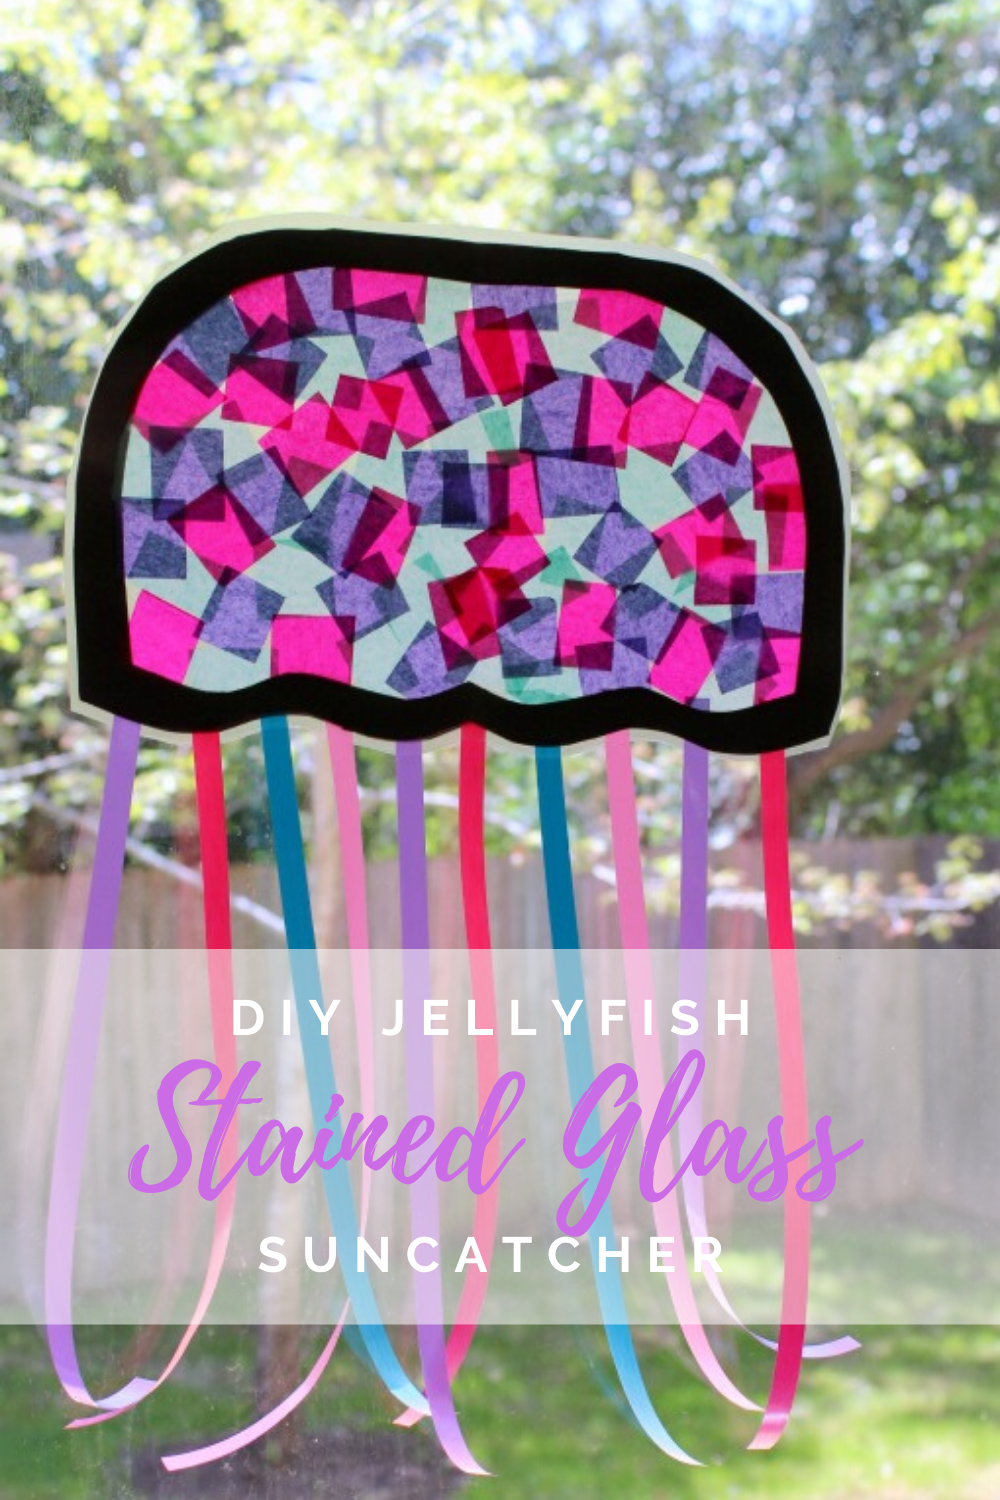 DIY Jelly Fish Stained Glass Suncatcher